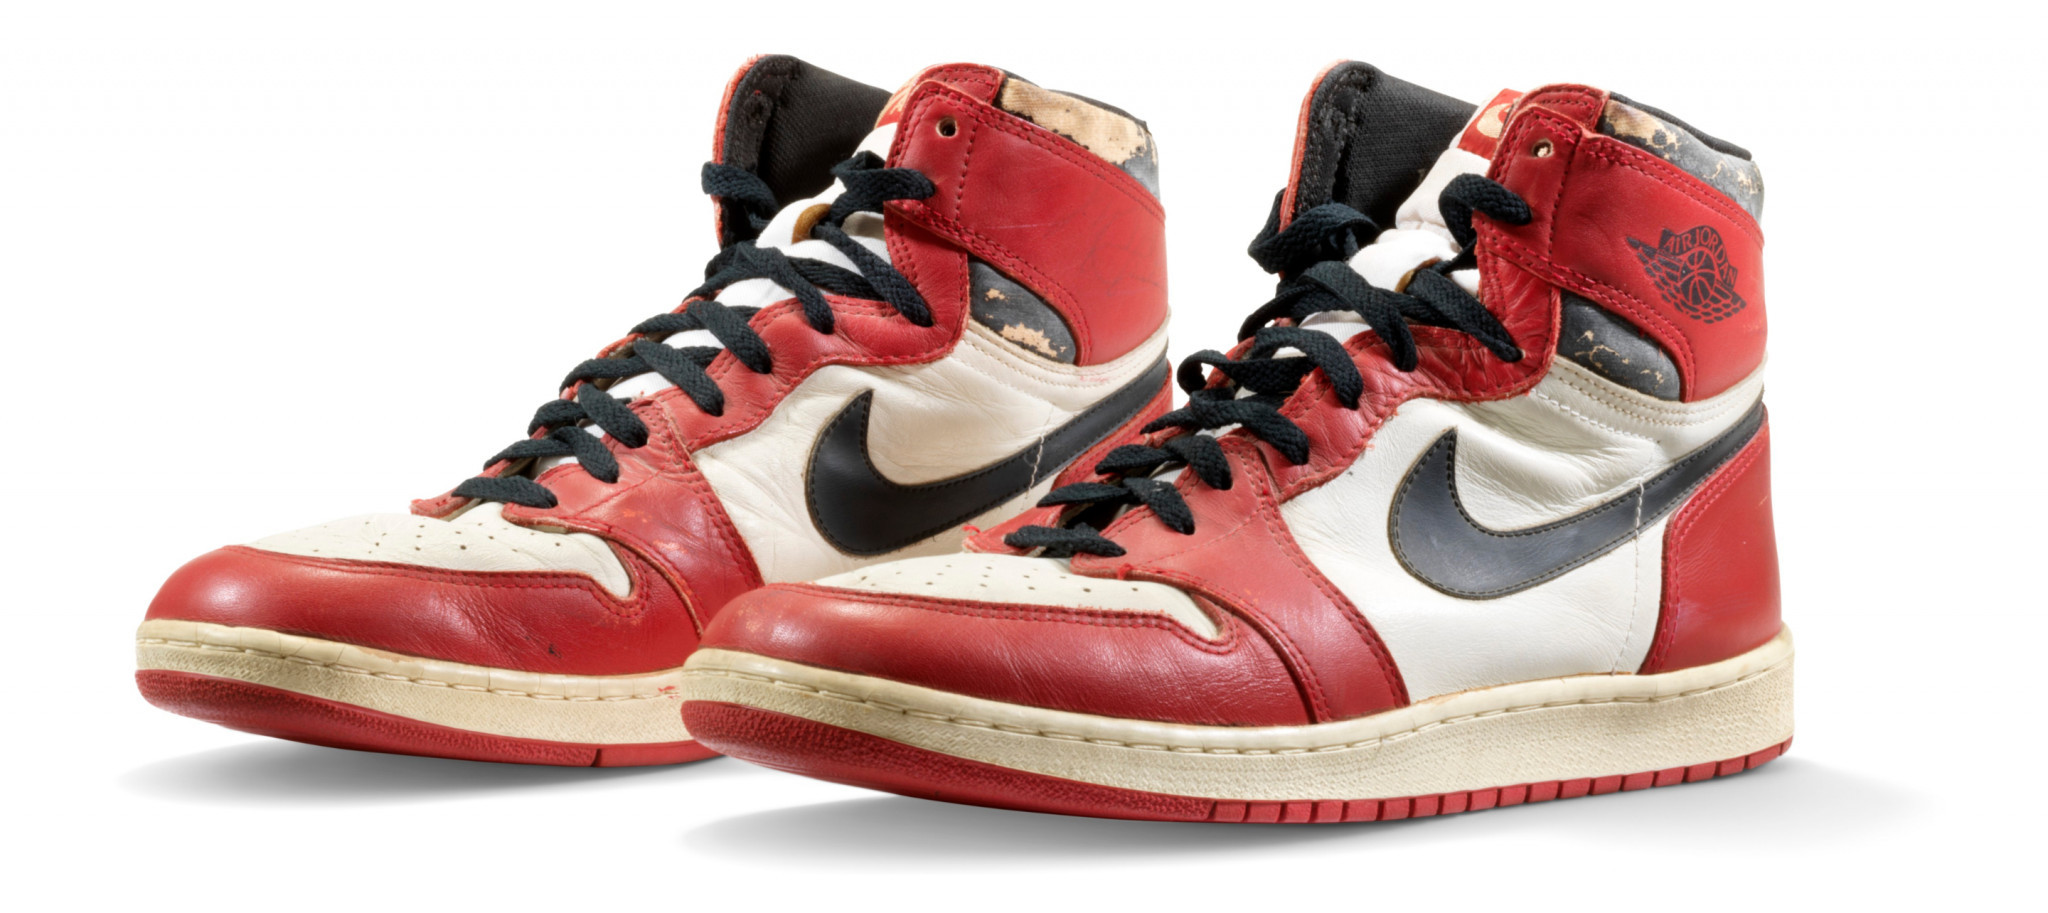 Pair of Michael Jordan trainers sell for record $615,000 at auction